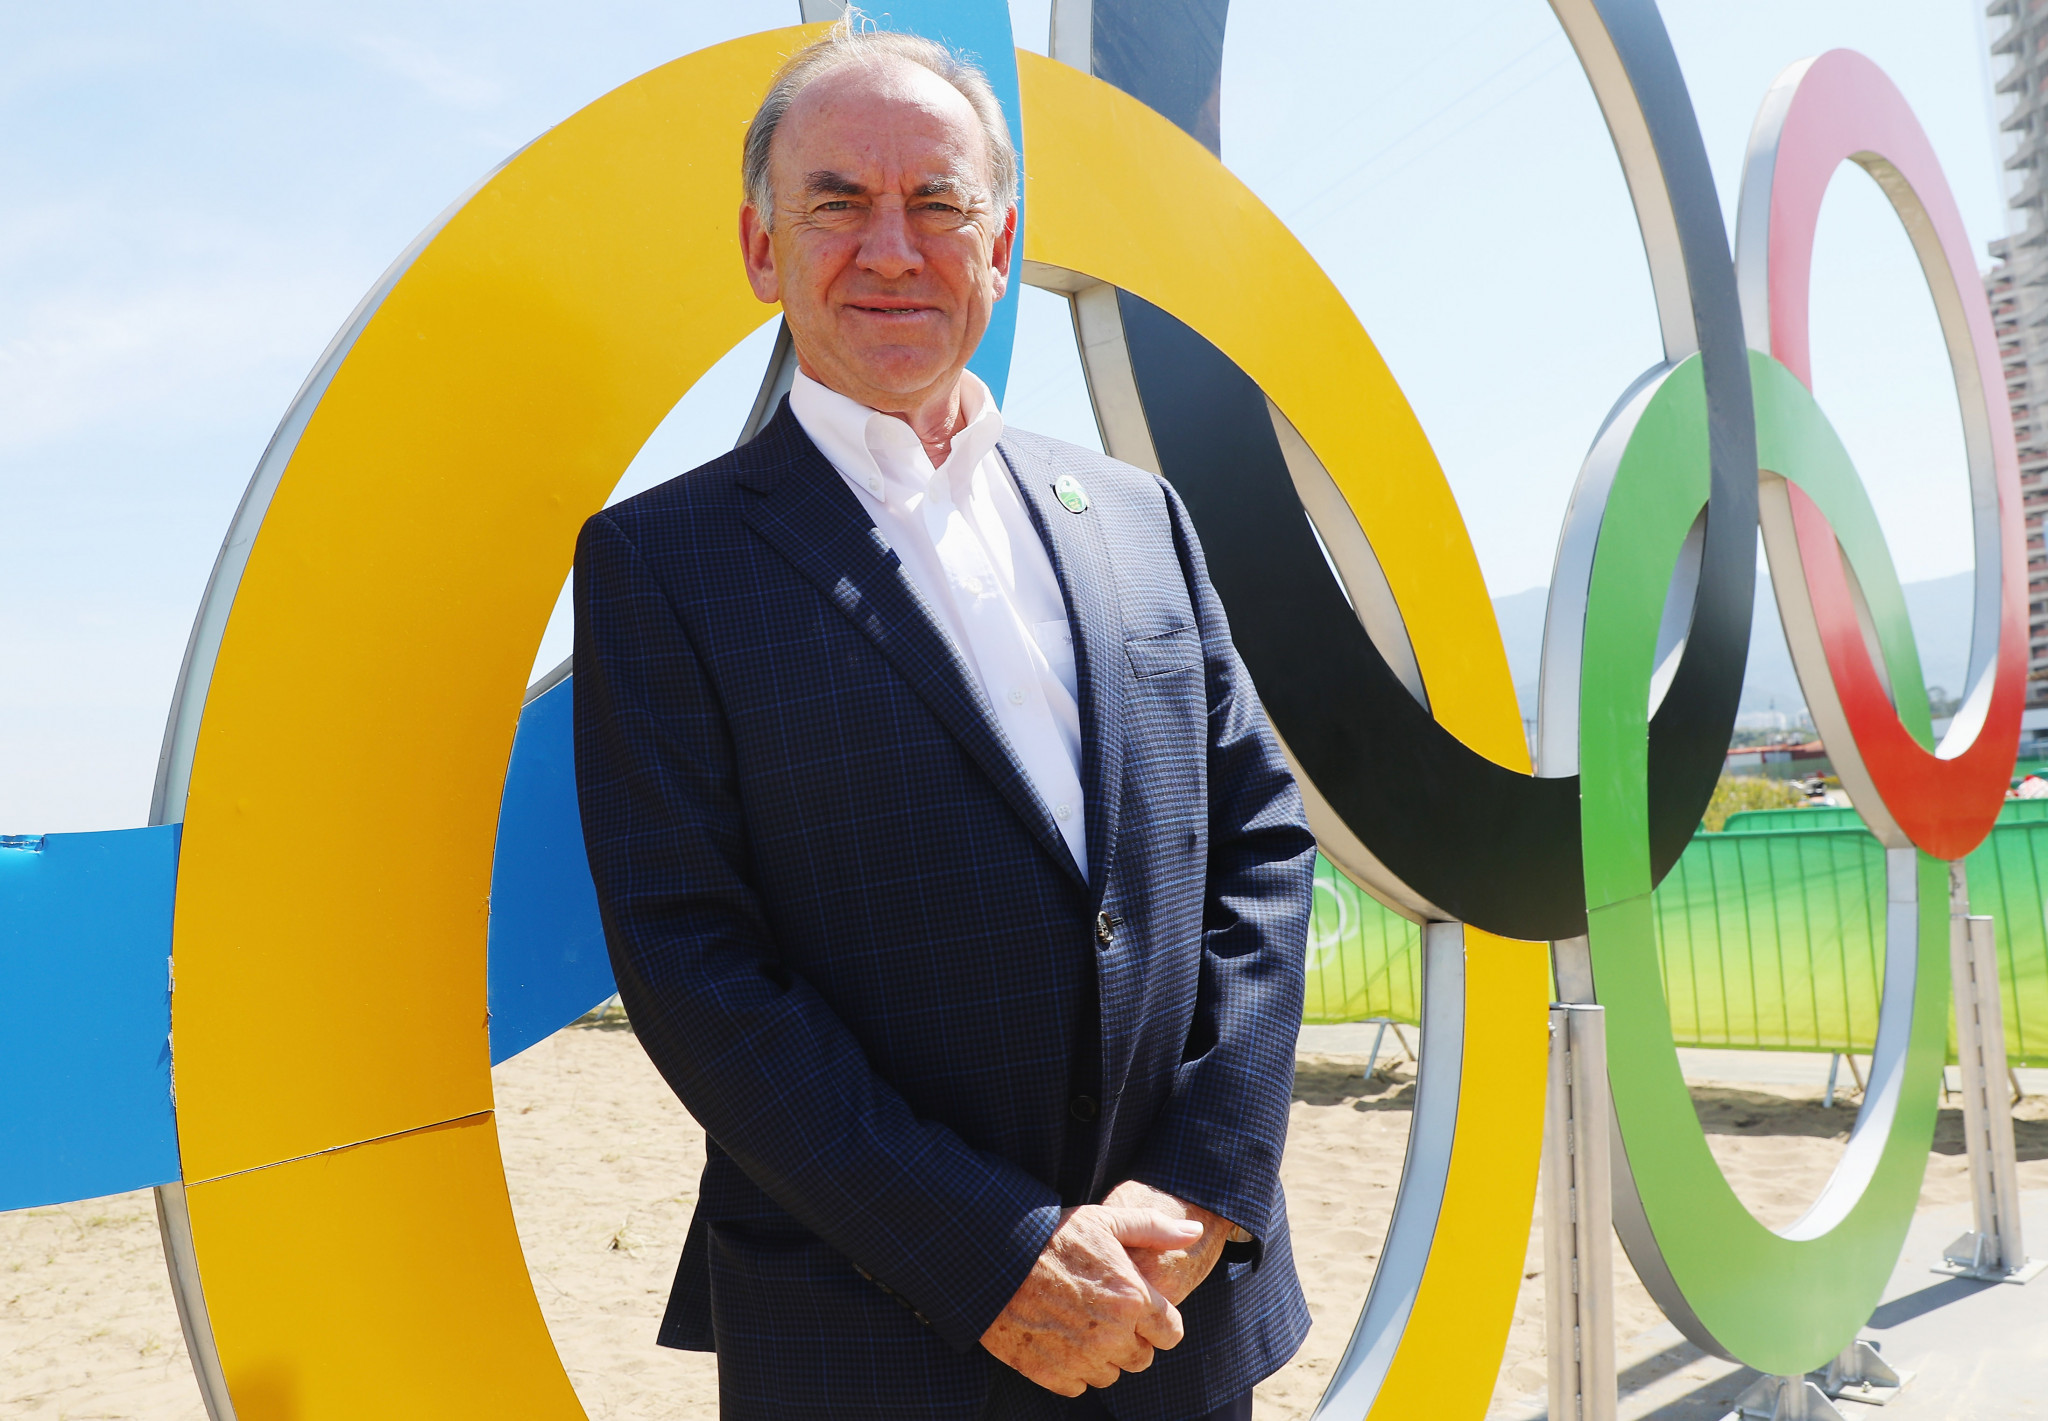 Exclusive: Retiring IGF President Dawson foresees packed houses for Olympic golf in Tokyo and Paris